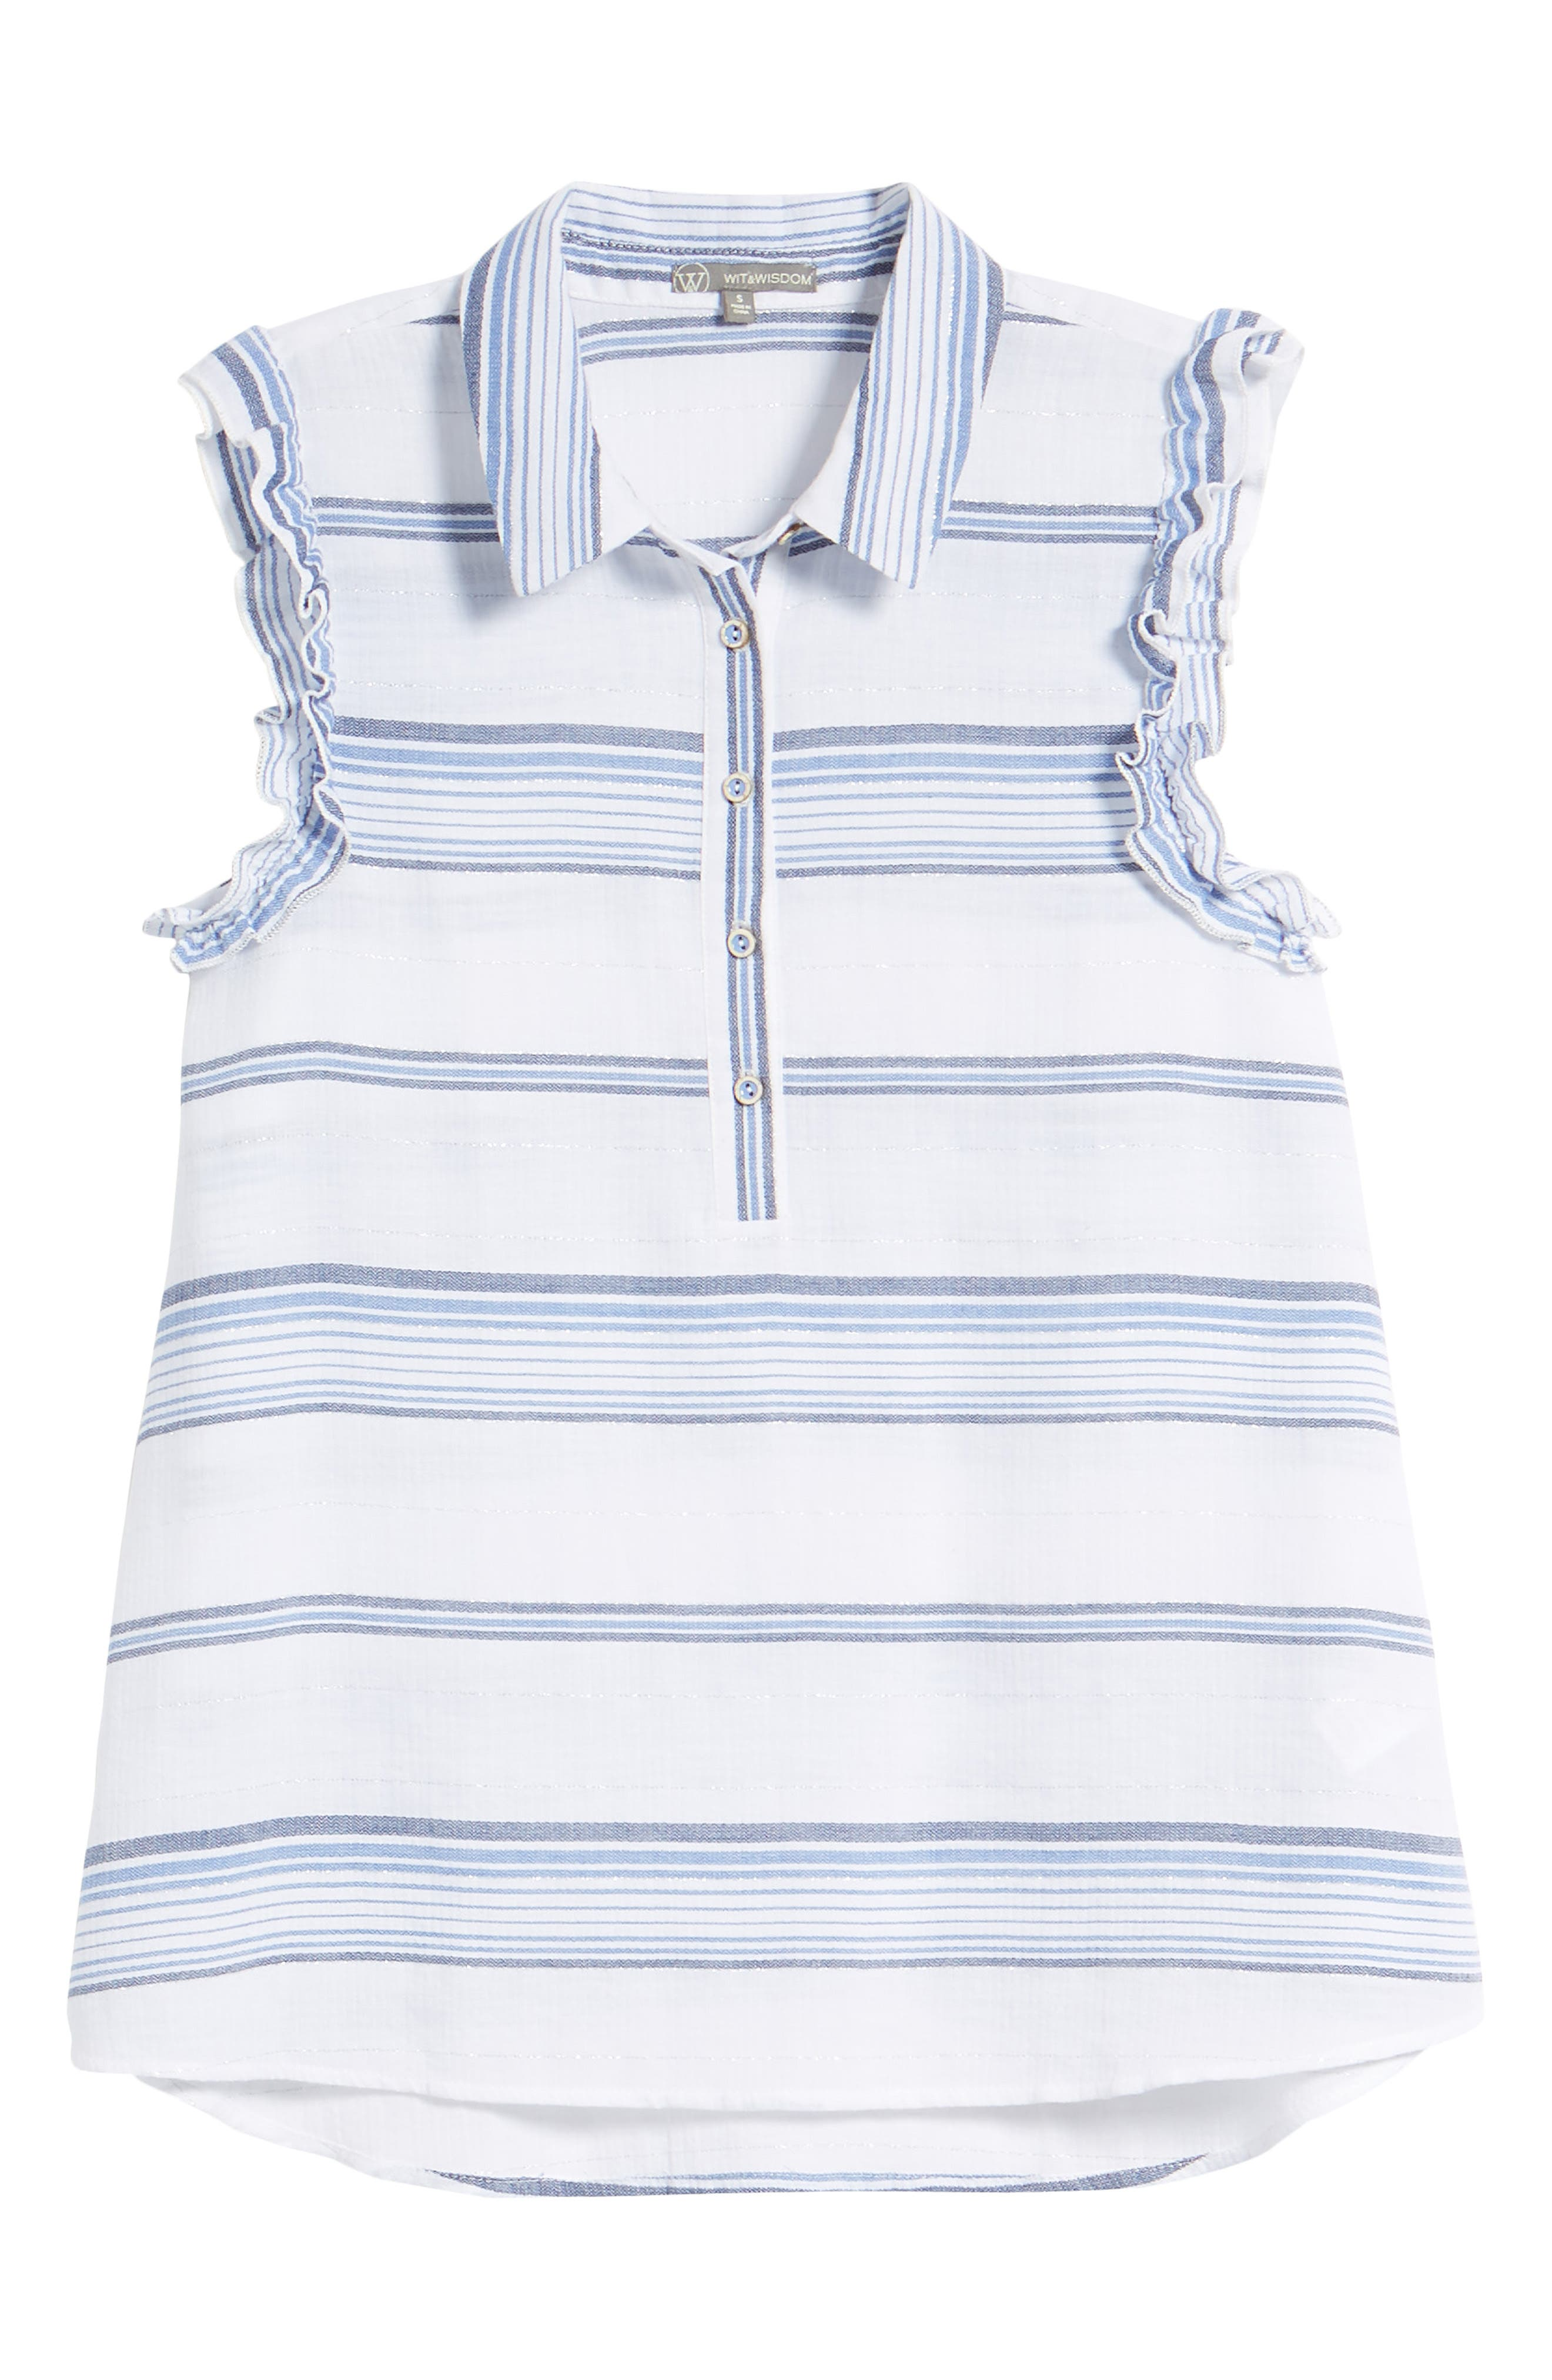 Ruffled Sleeve Striped Top,                             Alternate thumbnail 7, color,                             Blue/ White